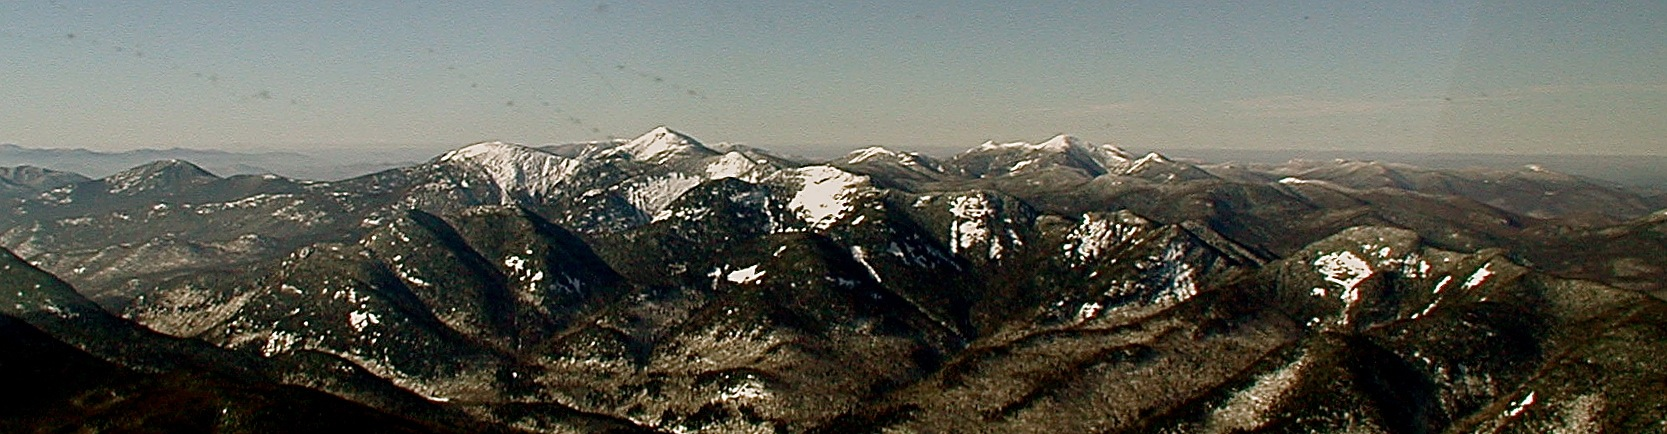 Looking northwest to the High Peaks with snow